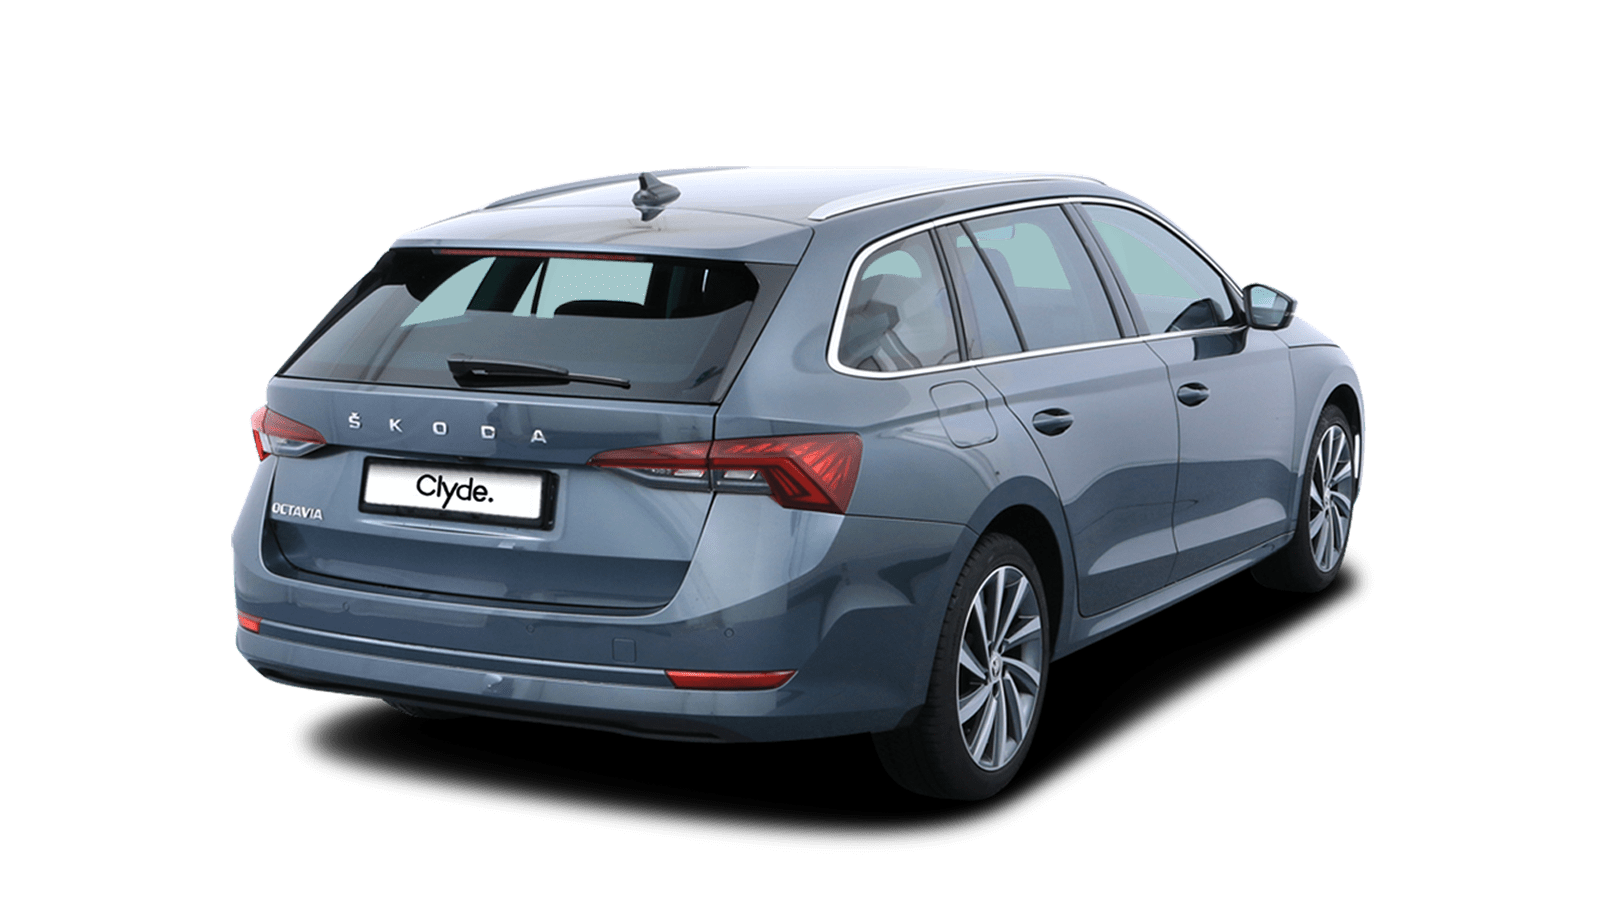 ŠKODA OCTAVIA COMBI Grey front - Clyde car subscription